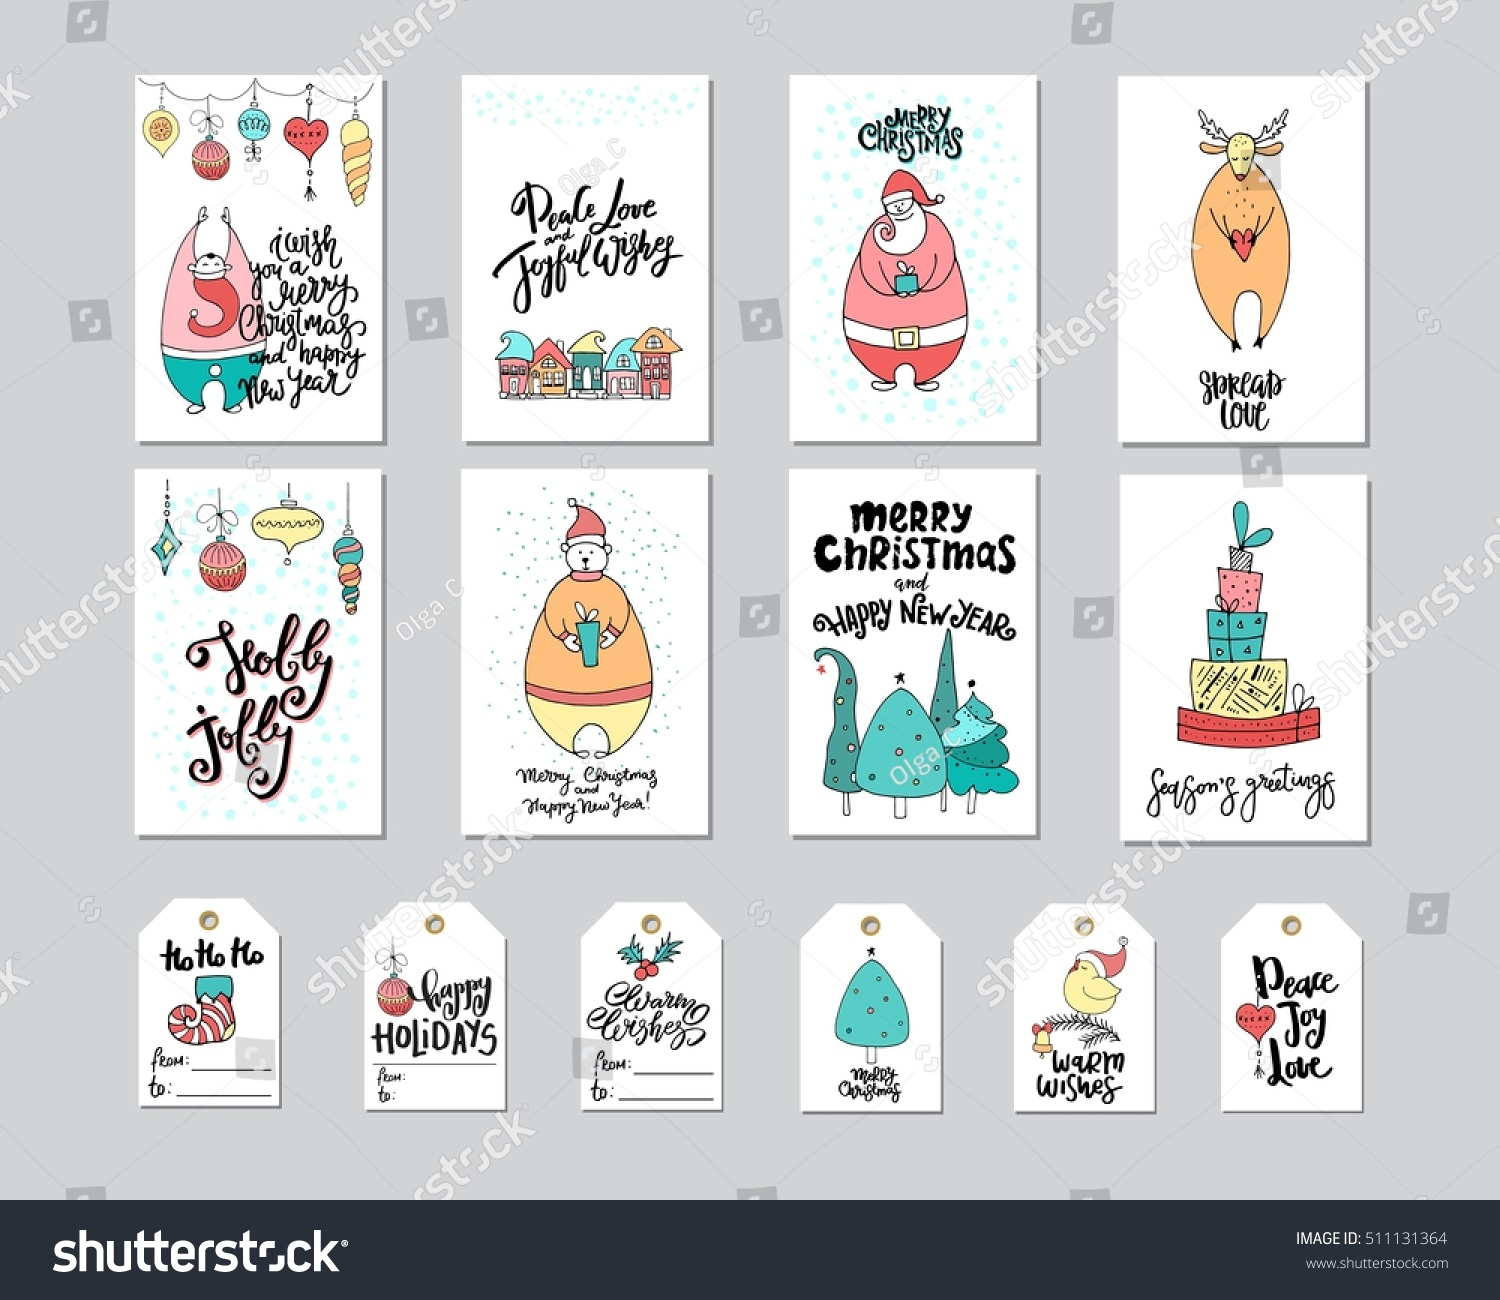 Merry Christmas Greeting Card Gift Tag Stock Vector (2018) 511131364 ...